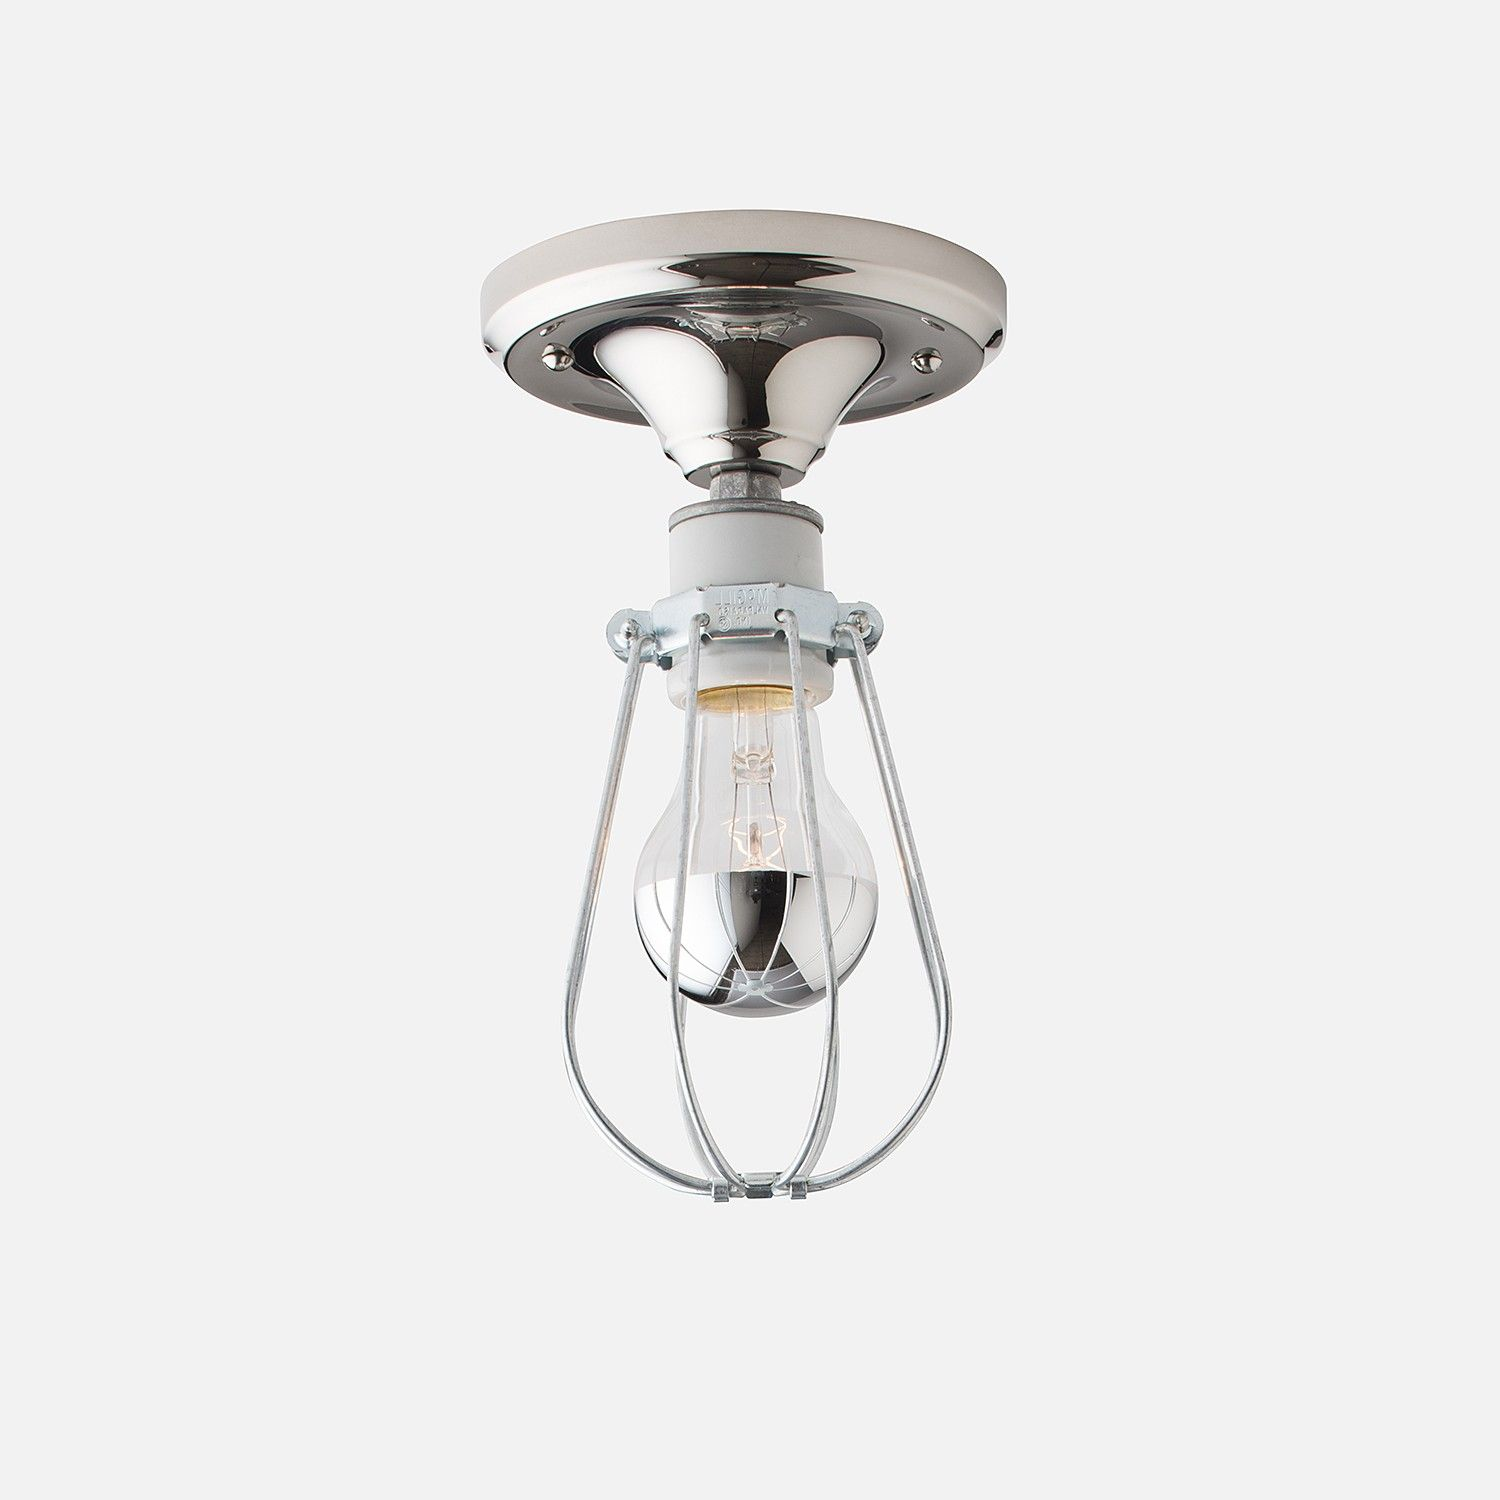 Franklin With Cage Surface Mount Light Fixture | Schoolhouse Electric U0026  Supply ...